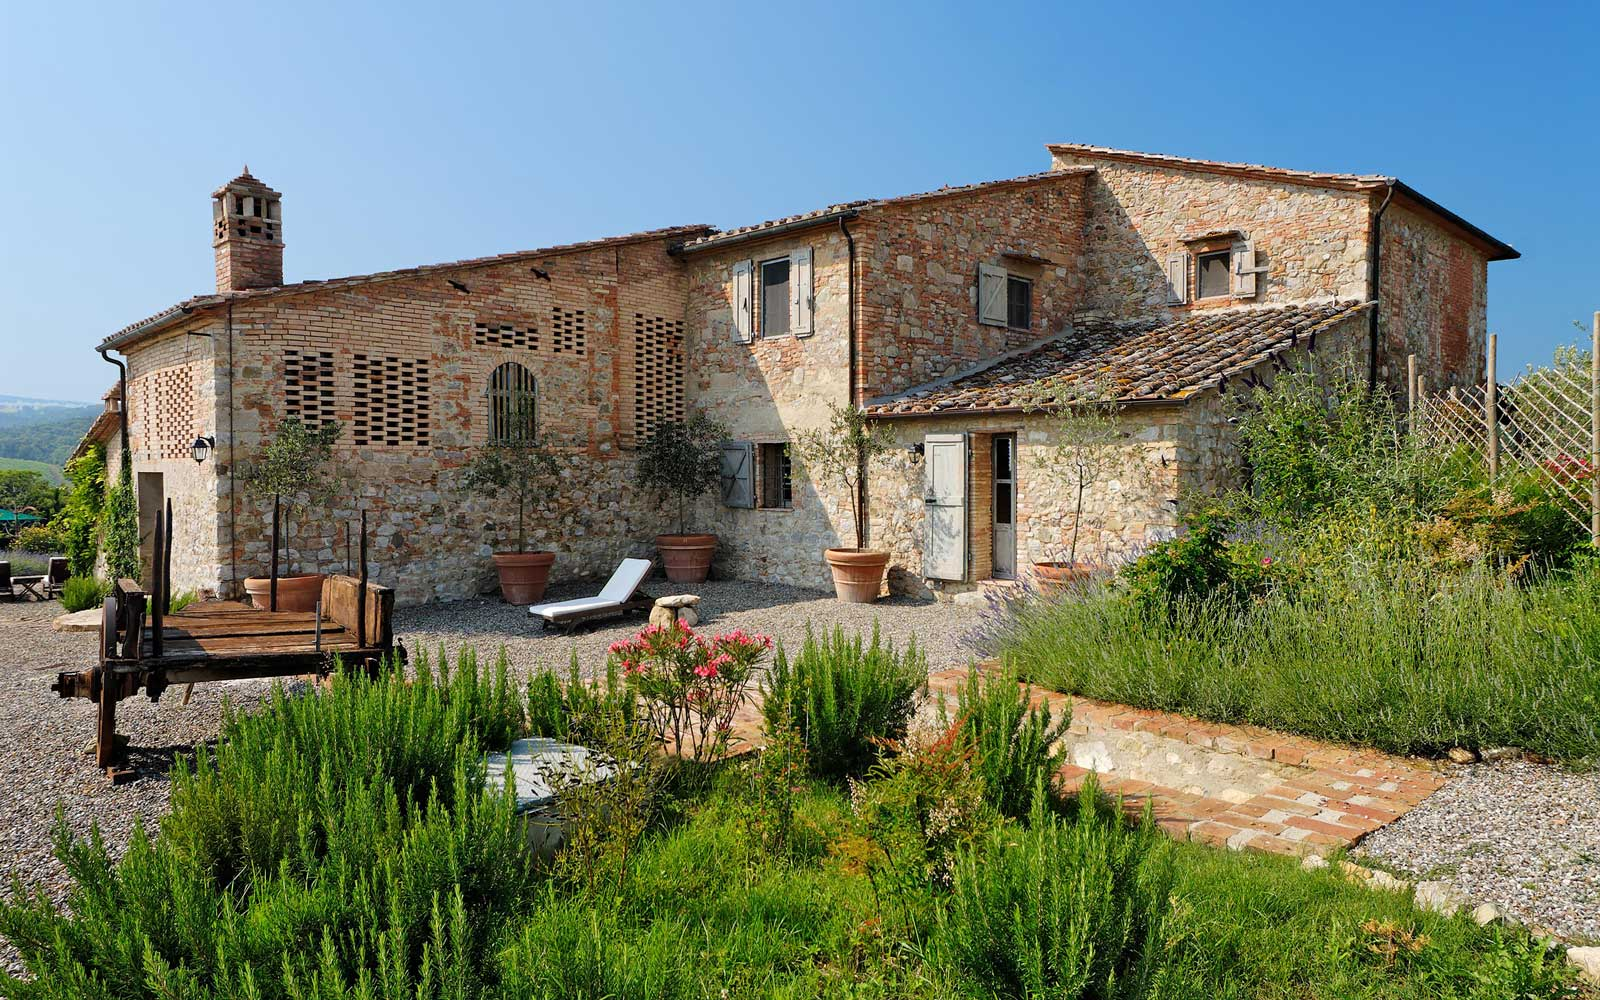 Get 25% off a Weeklong Stay at a Private Villa in Tuscany